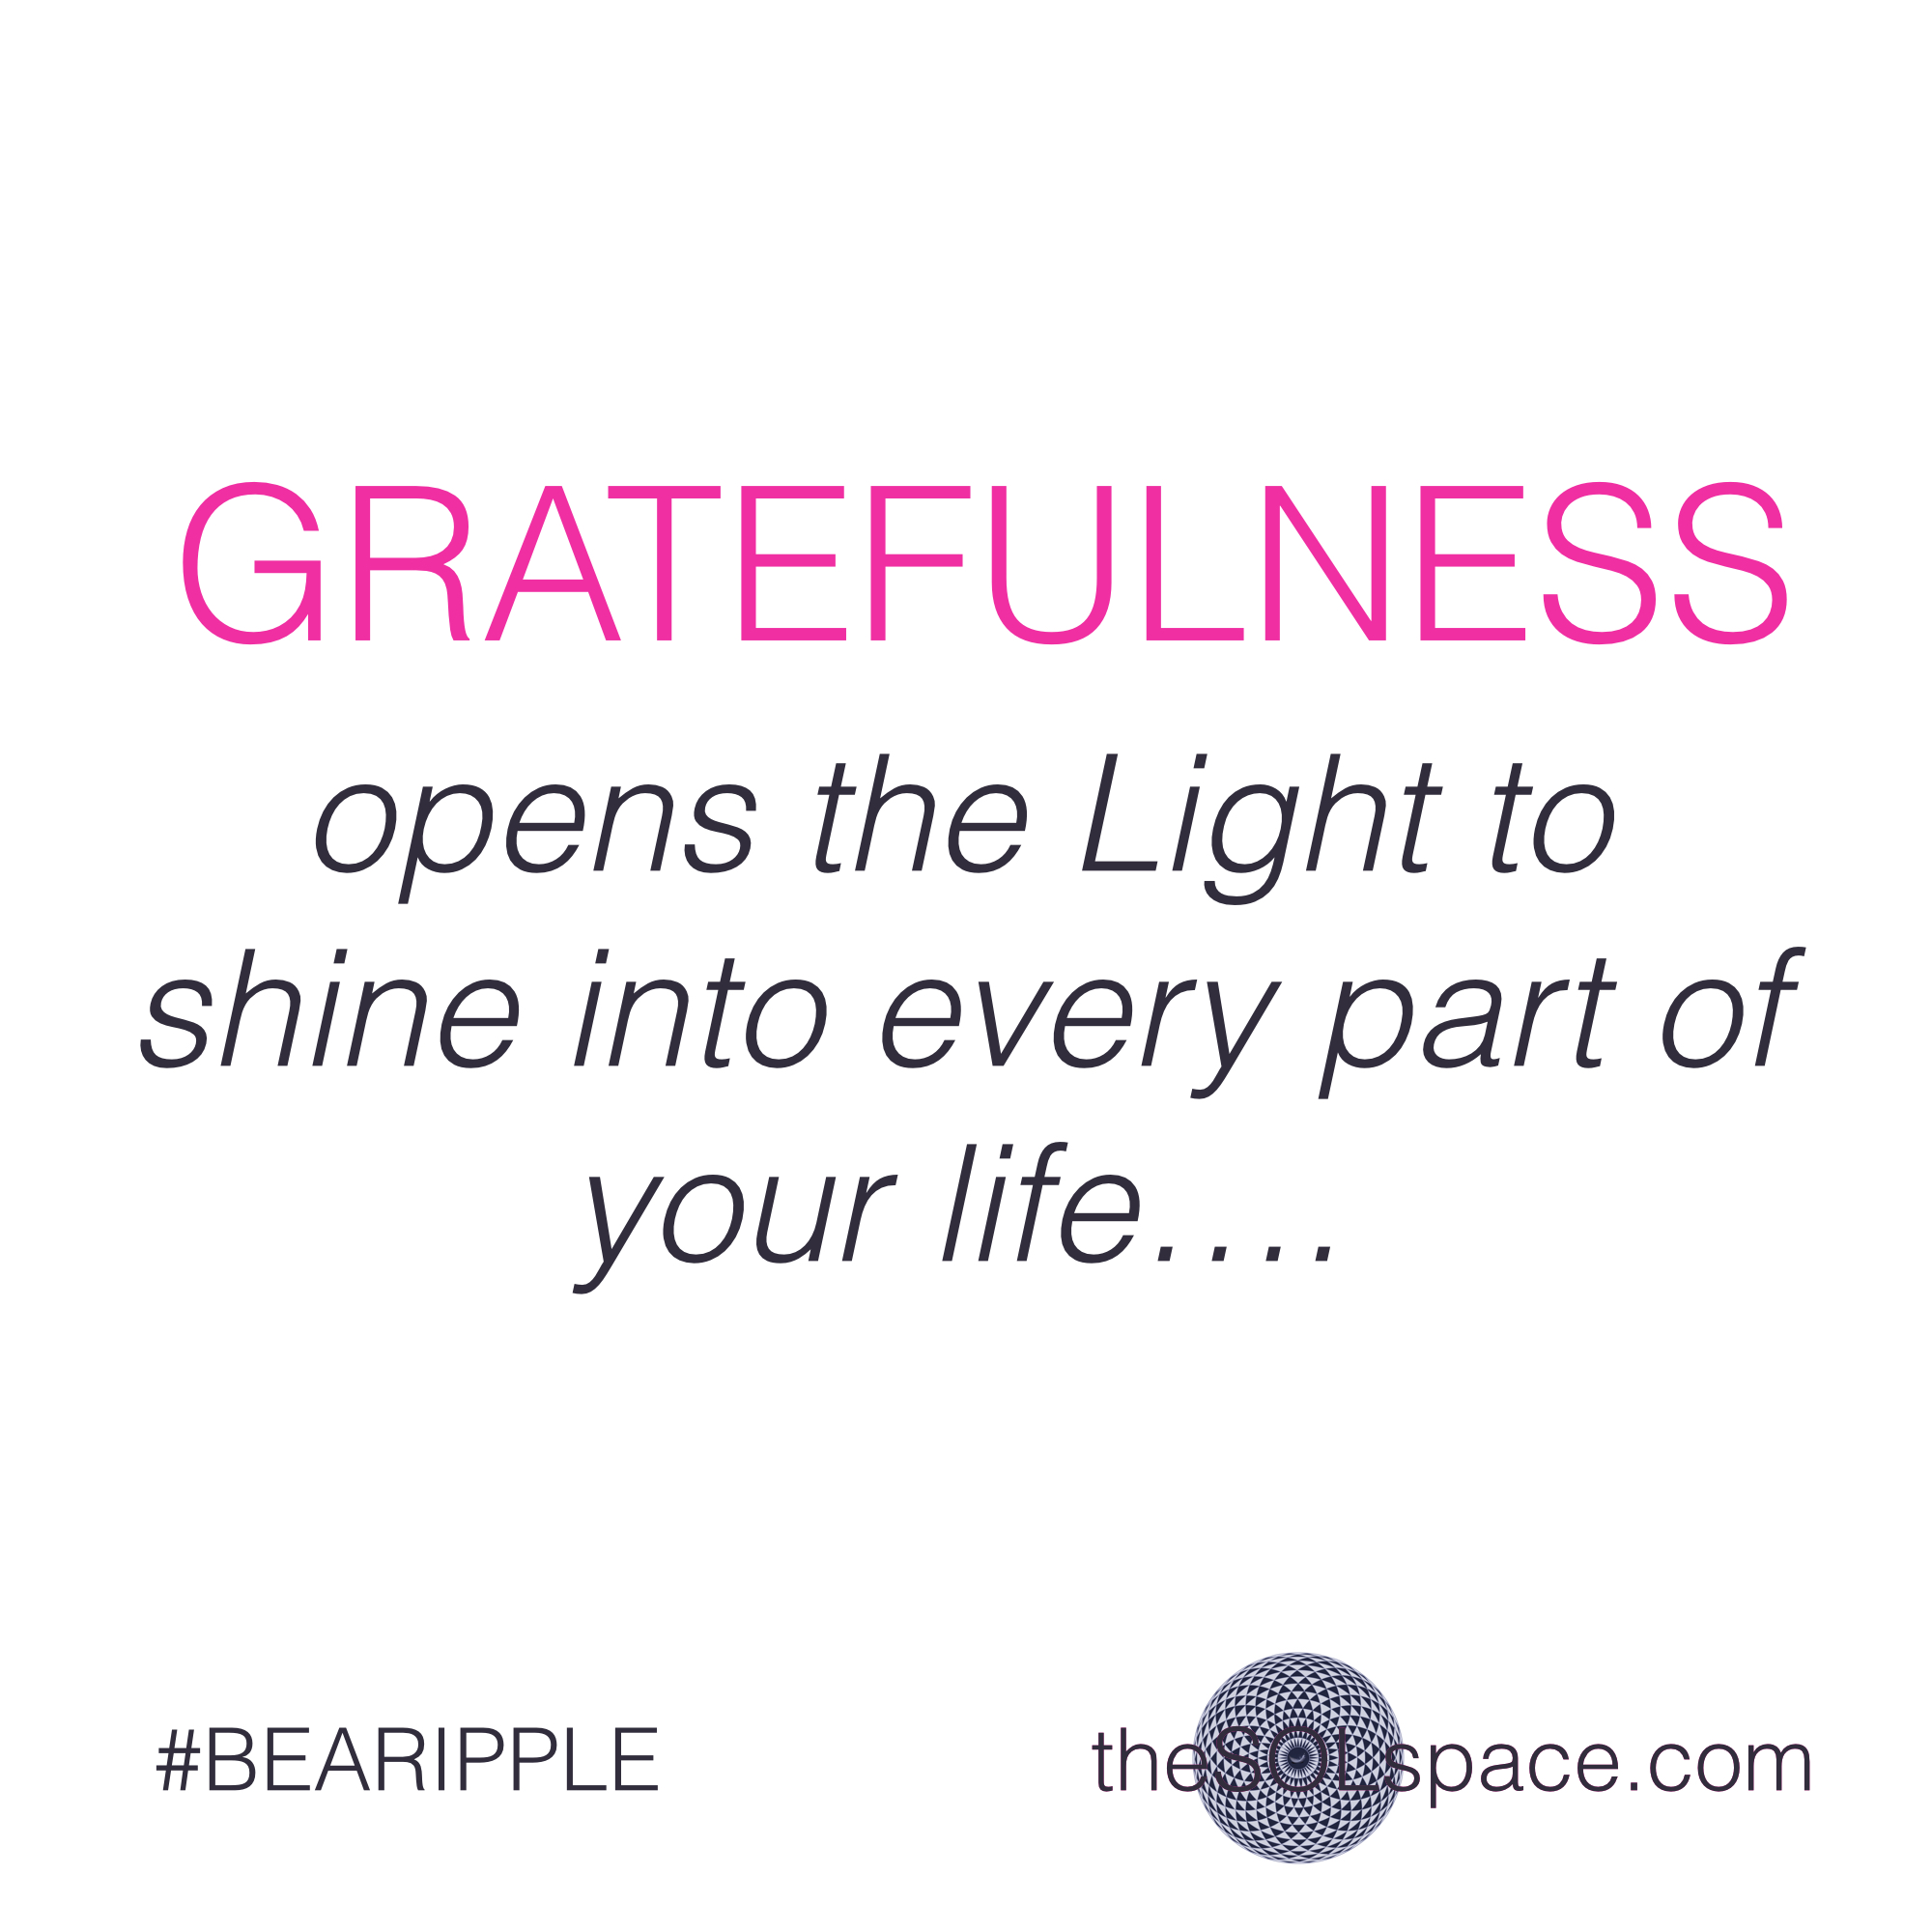 #BeARipple..Gratefulness opens the Light to shine into every part of your life @theSOLspace